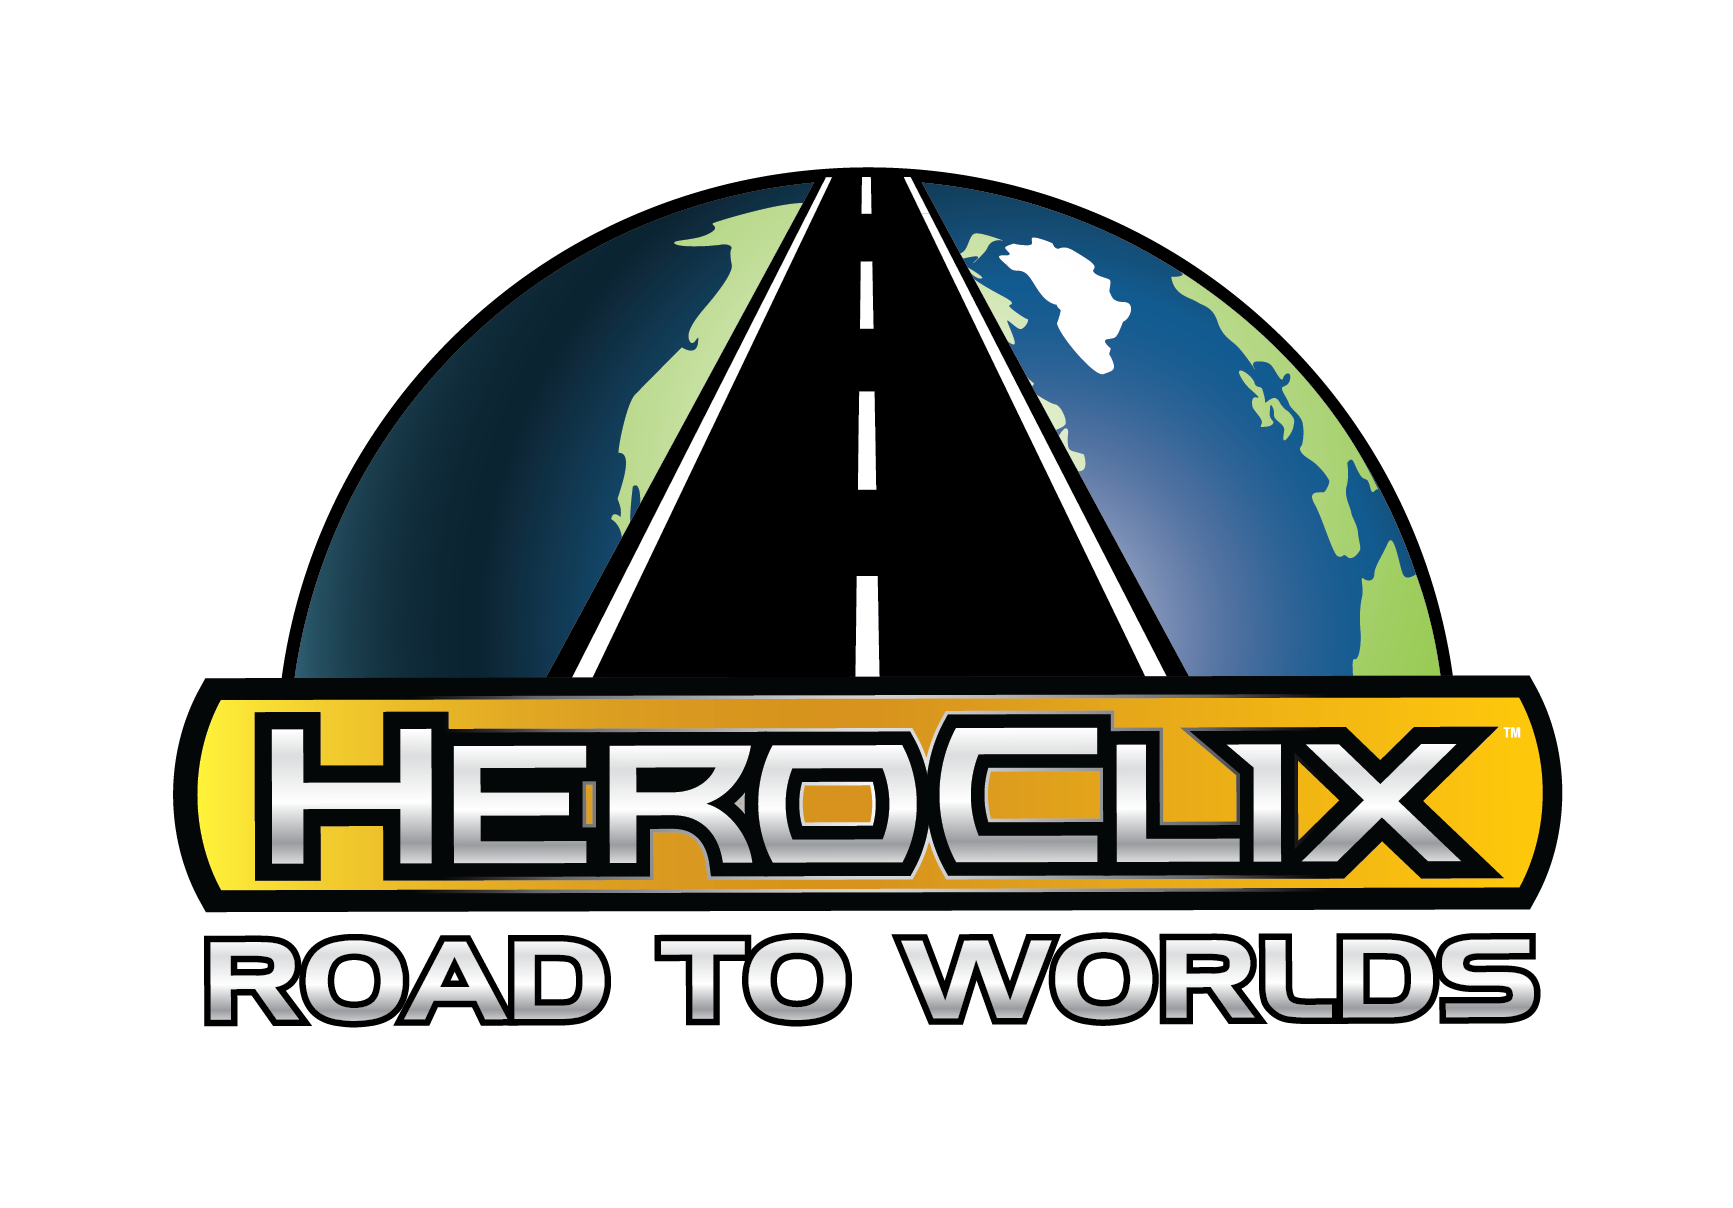 HeroClix Road to Worlds